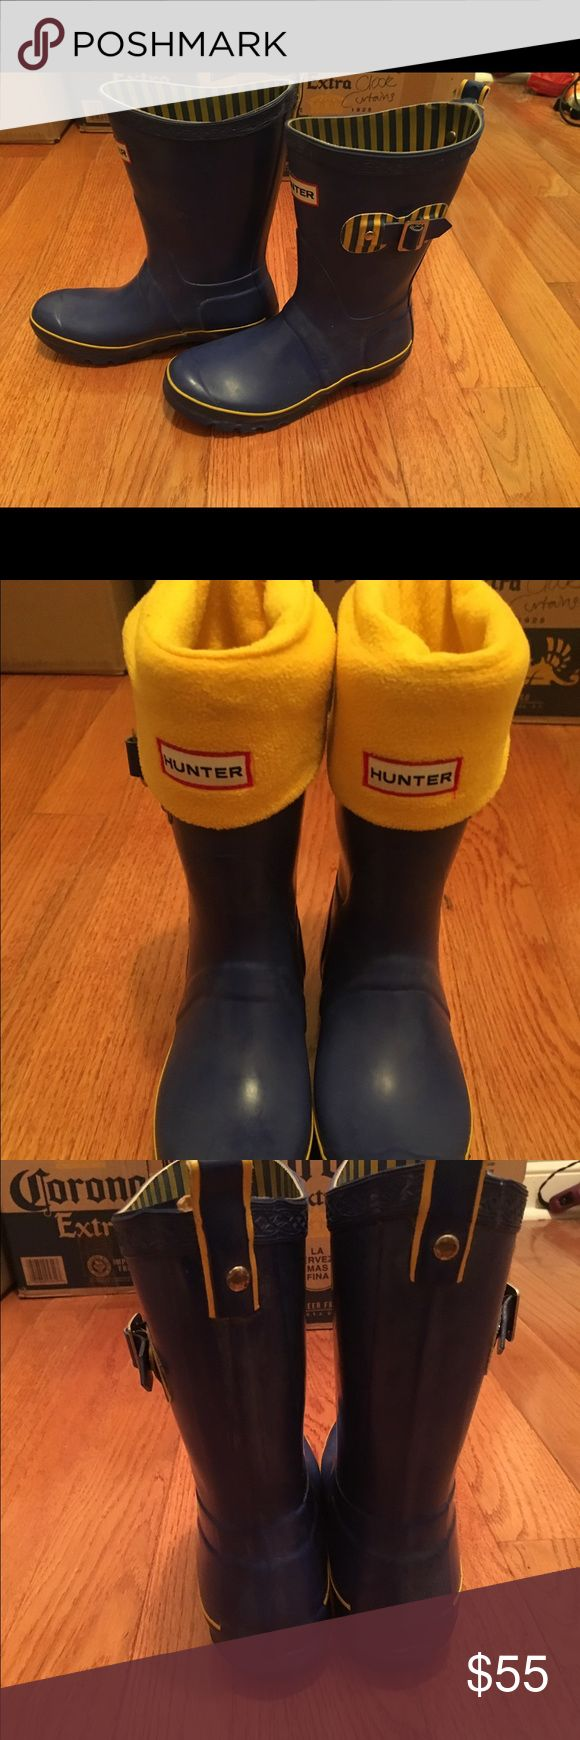 Hunter Limited Edition Stripped boots 6m wellies Limited edition hunter wellies short style boots.  Blue with yellow detailing - stripped lining and gusset detailing.  Includes yellow fleece boot socks.  Used. Hunter Boots Shoes Winter & Rain Boots